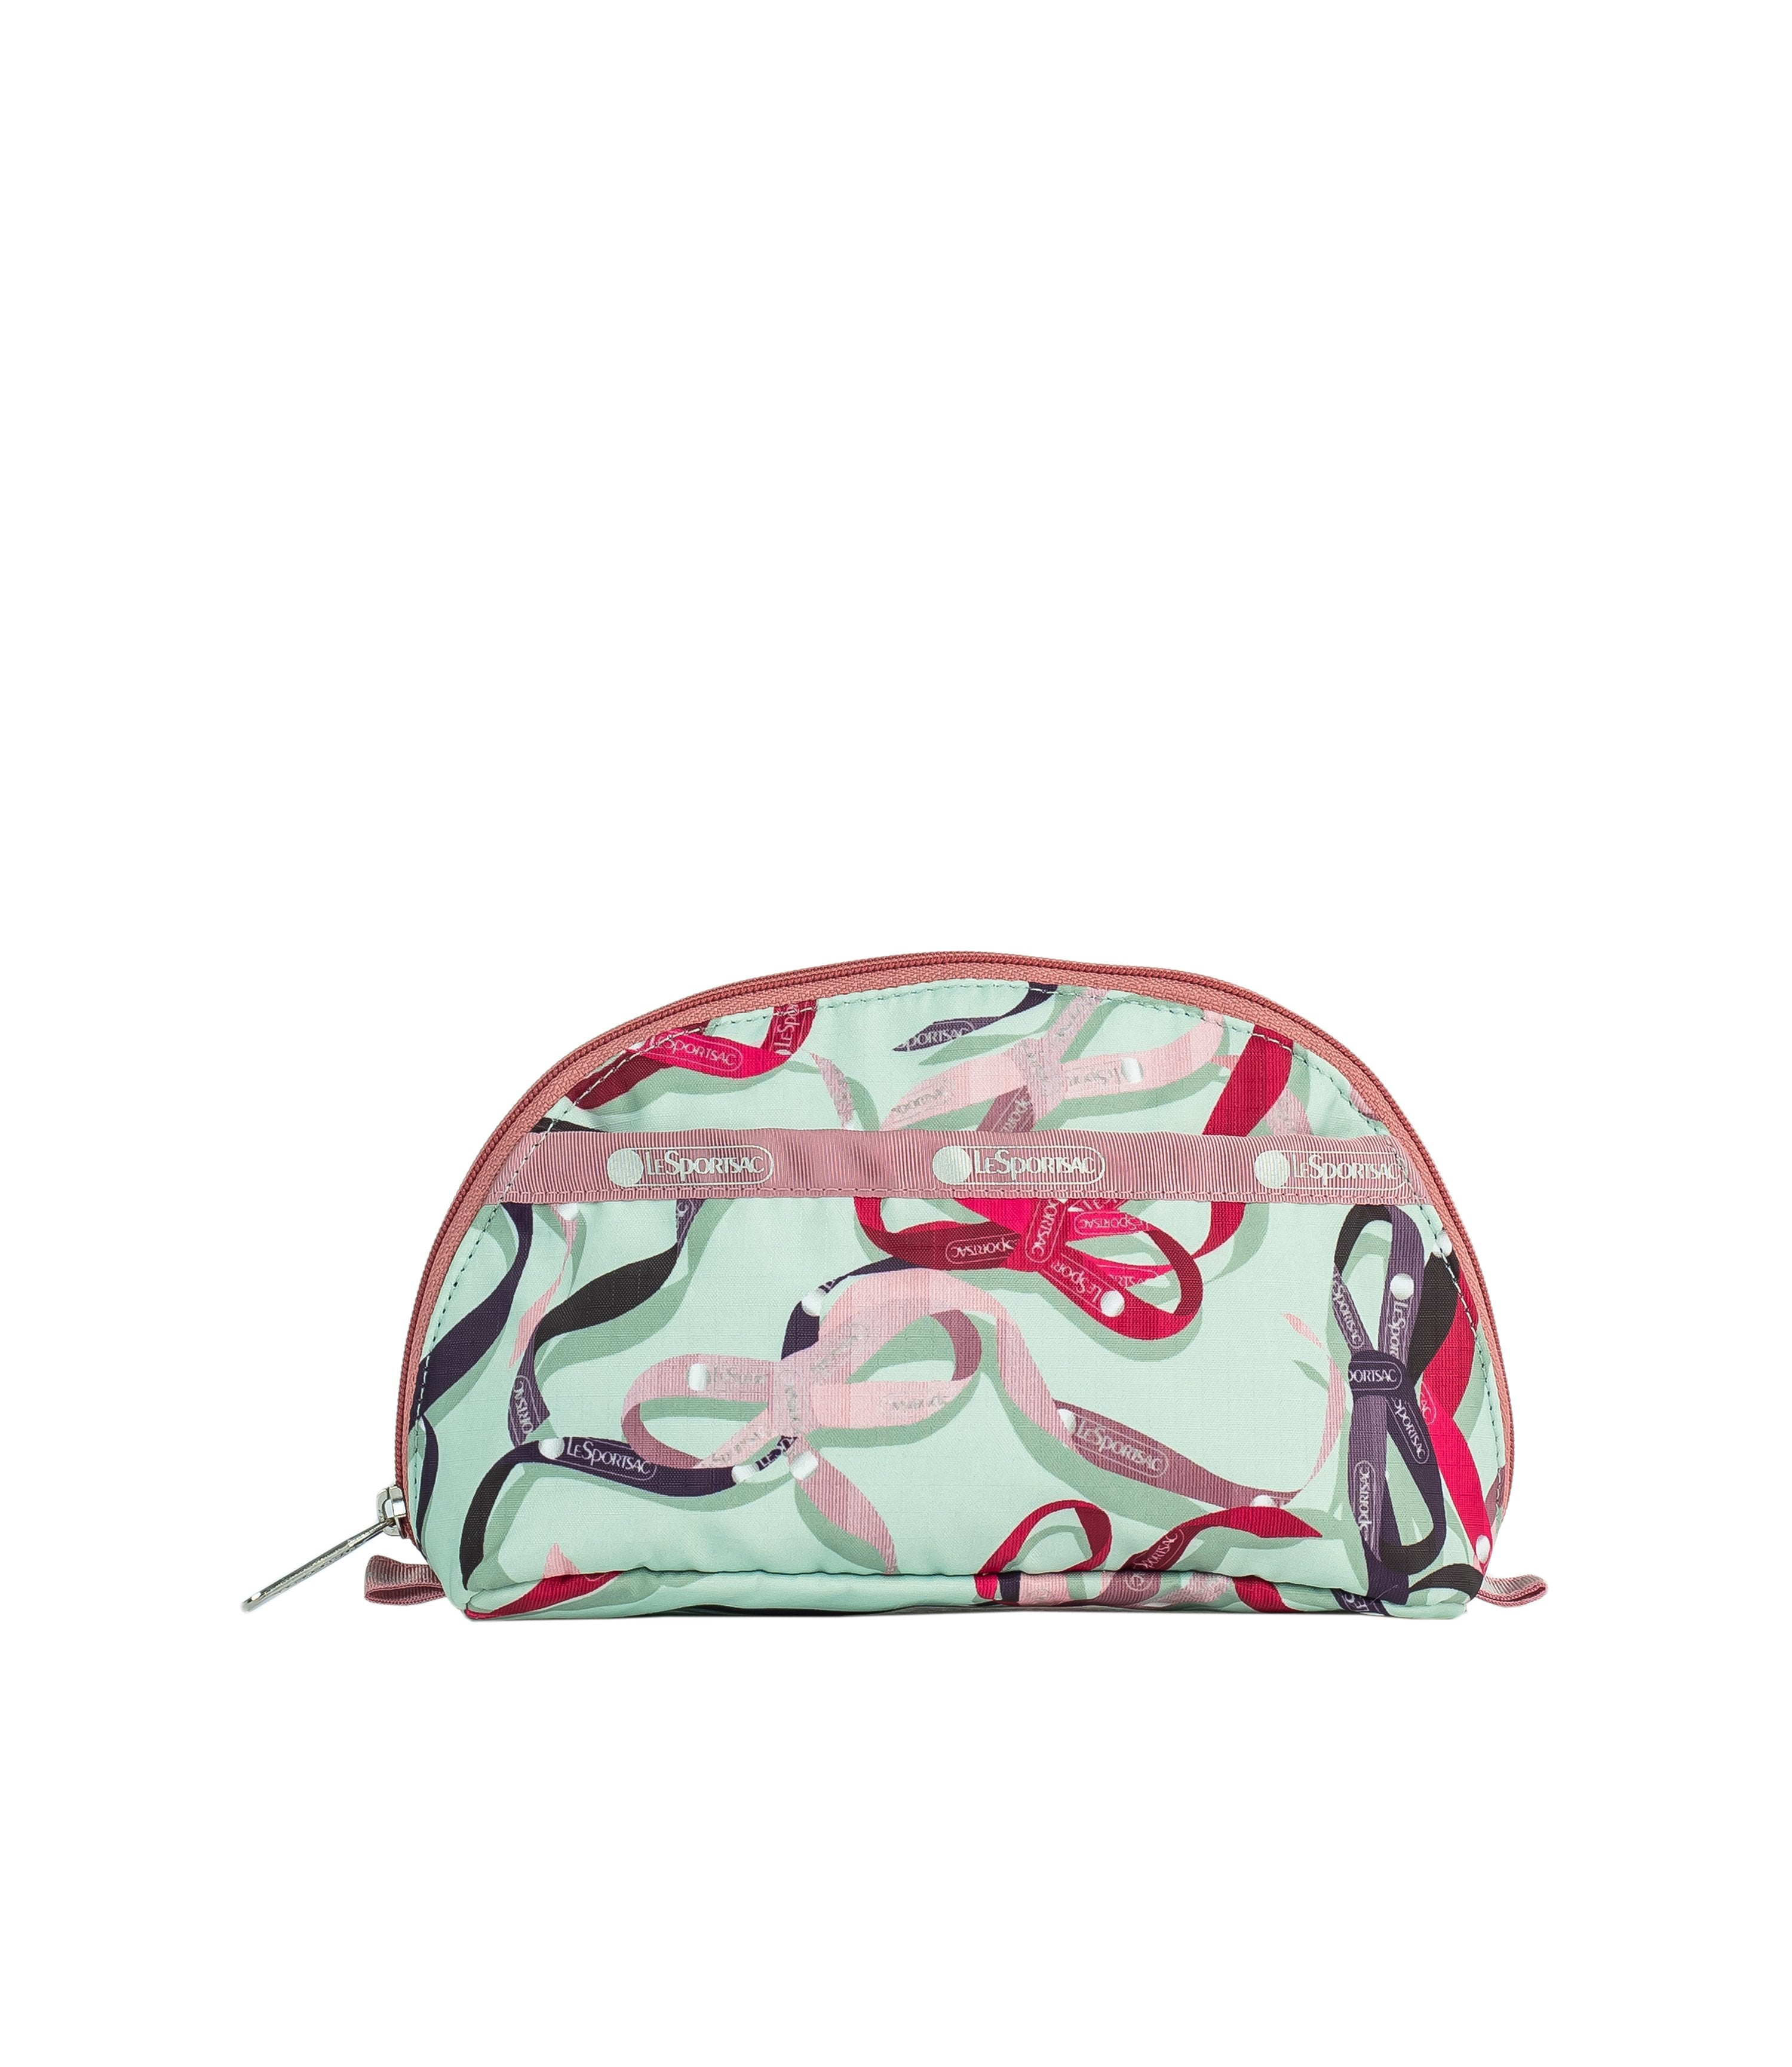 LeSportsac - Accessories - Dome Cosmetic - Ribbons print